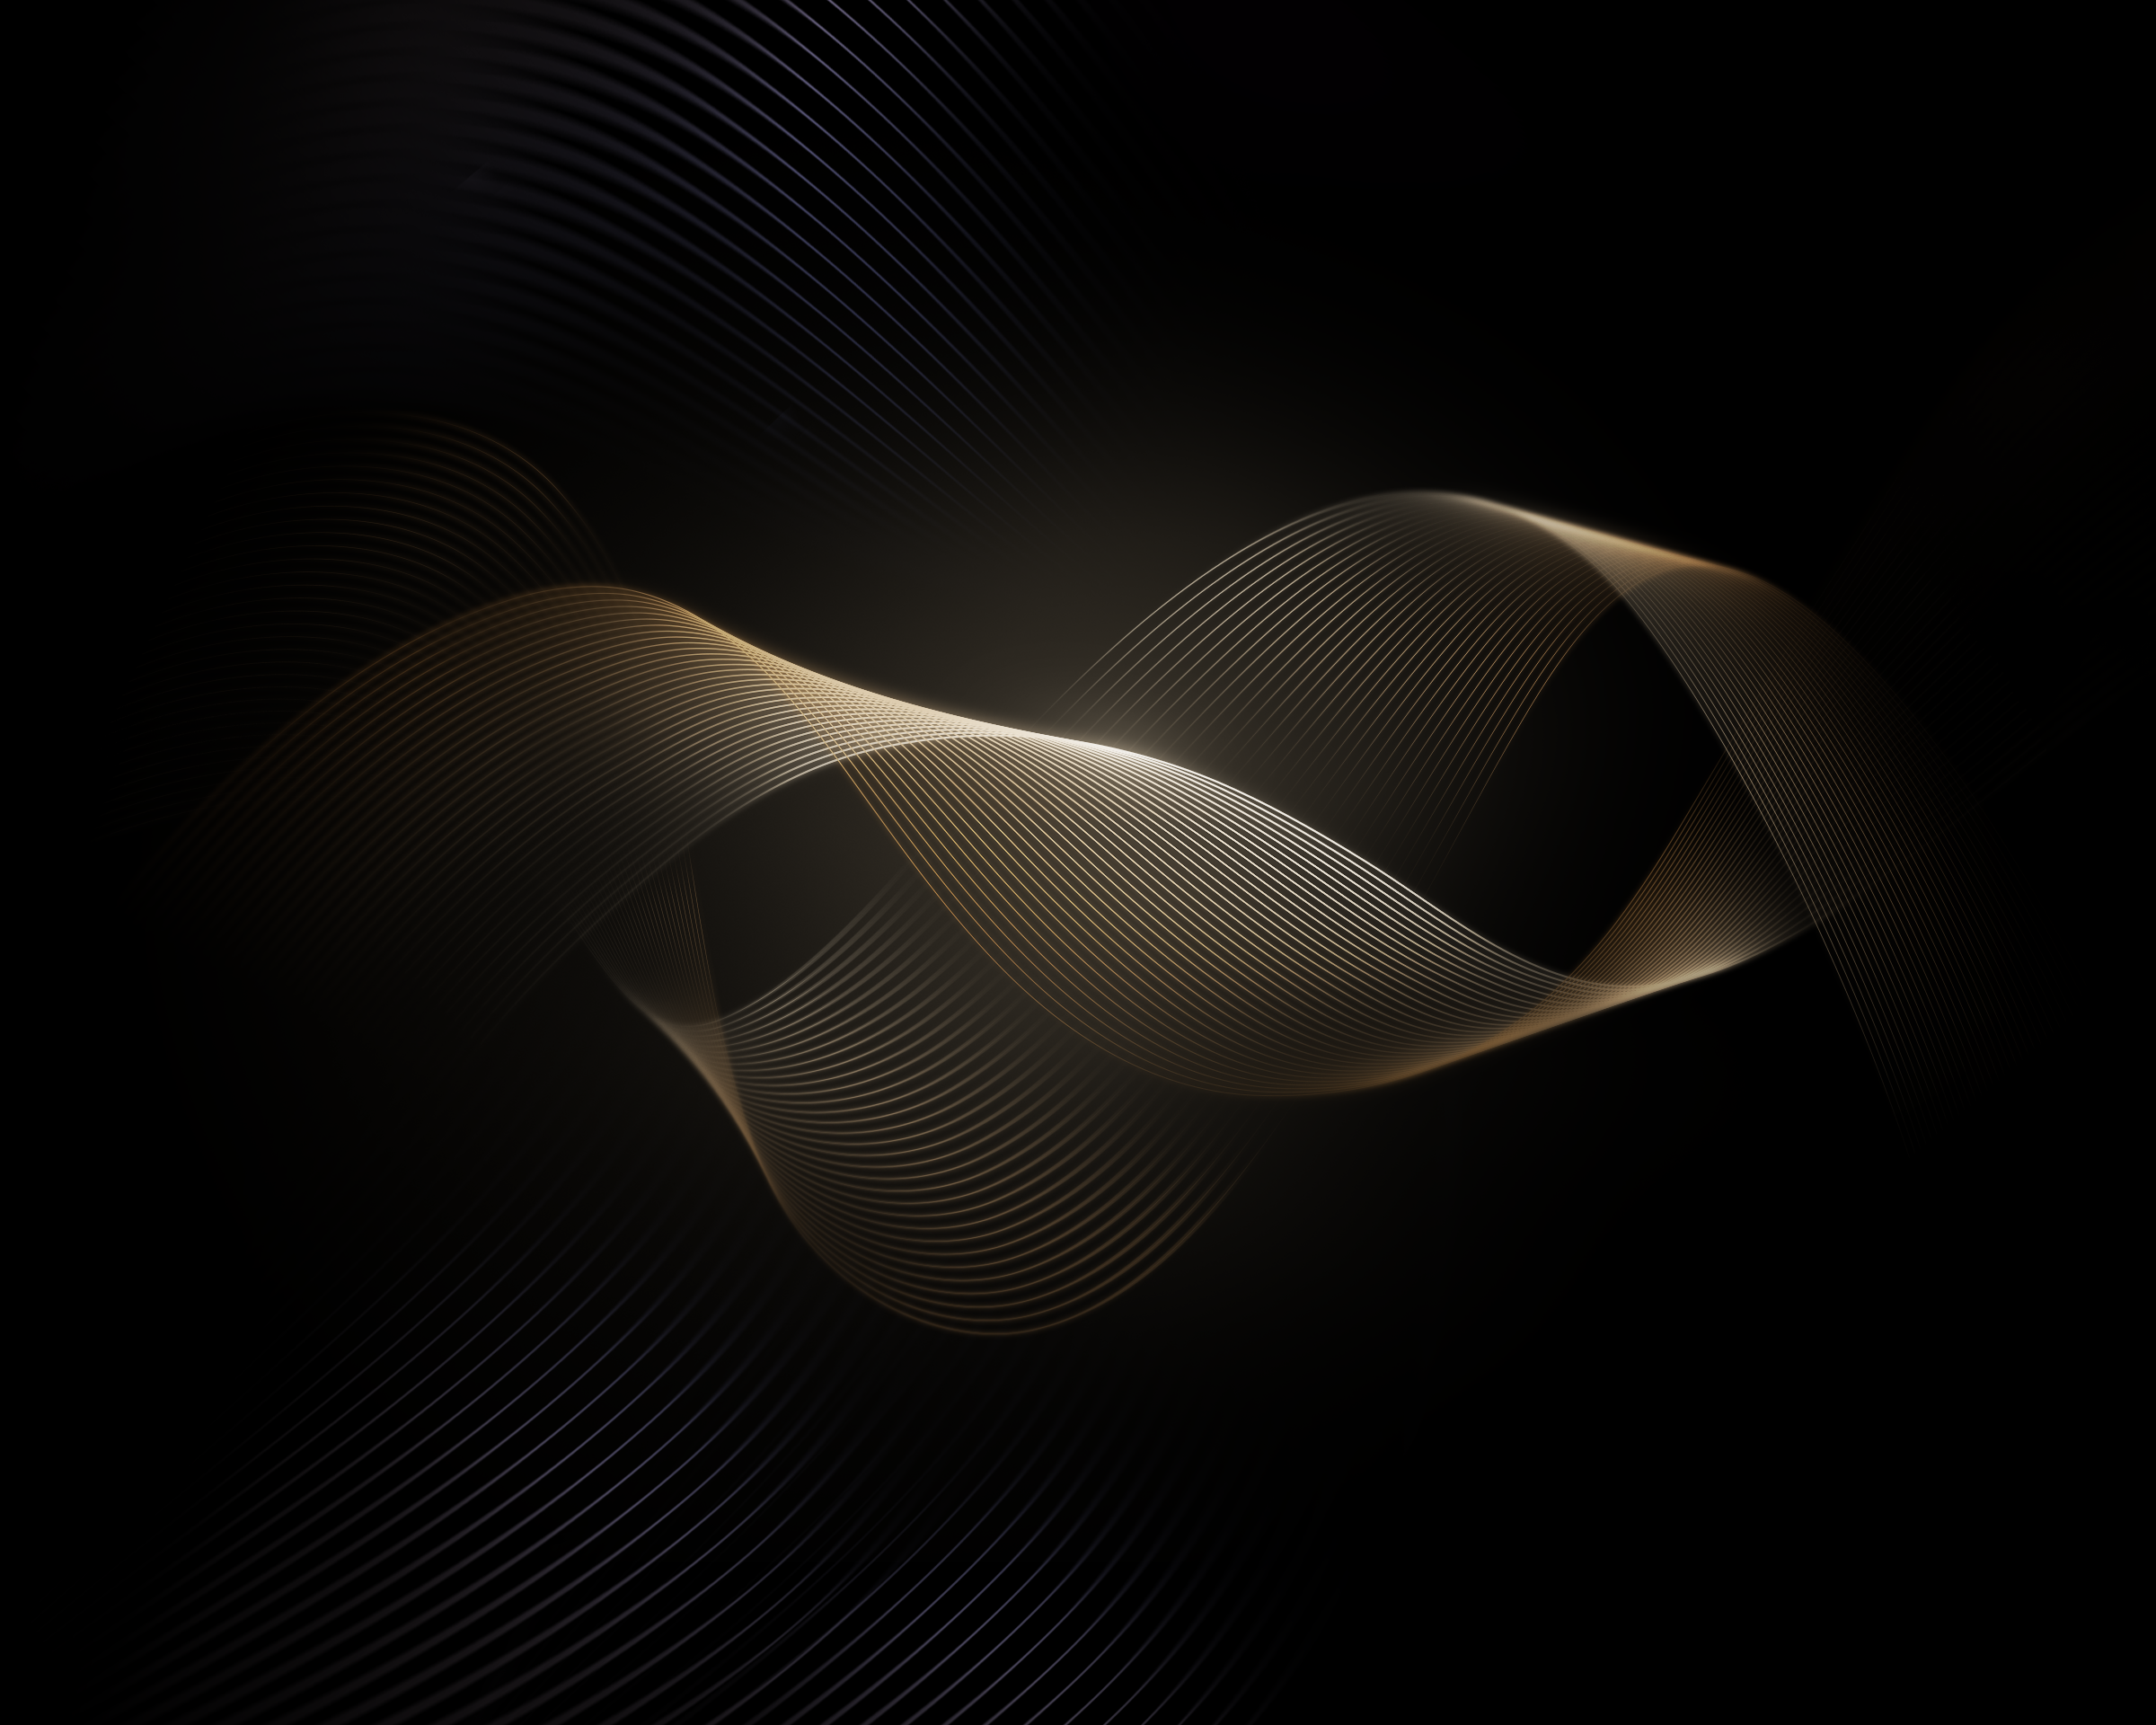 Gold And Black Wallpapers Posted By Zoey Peltier